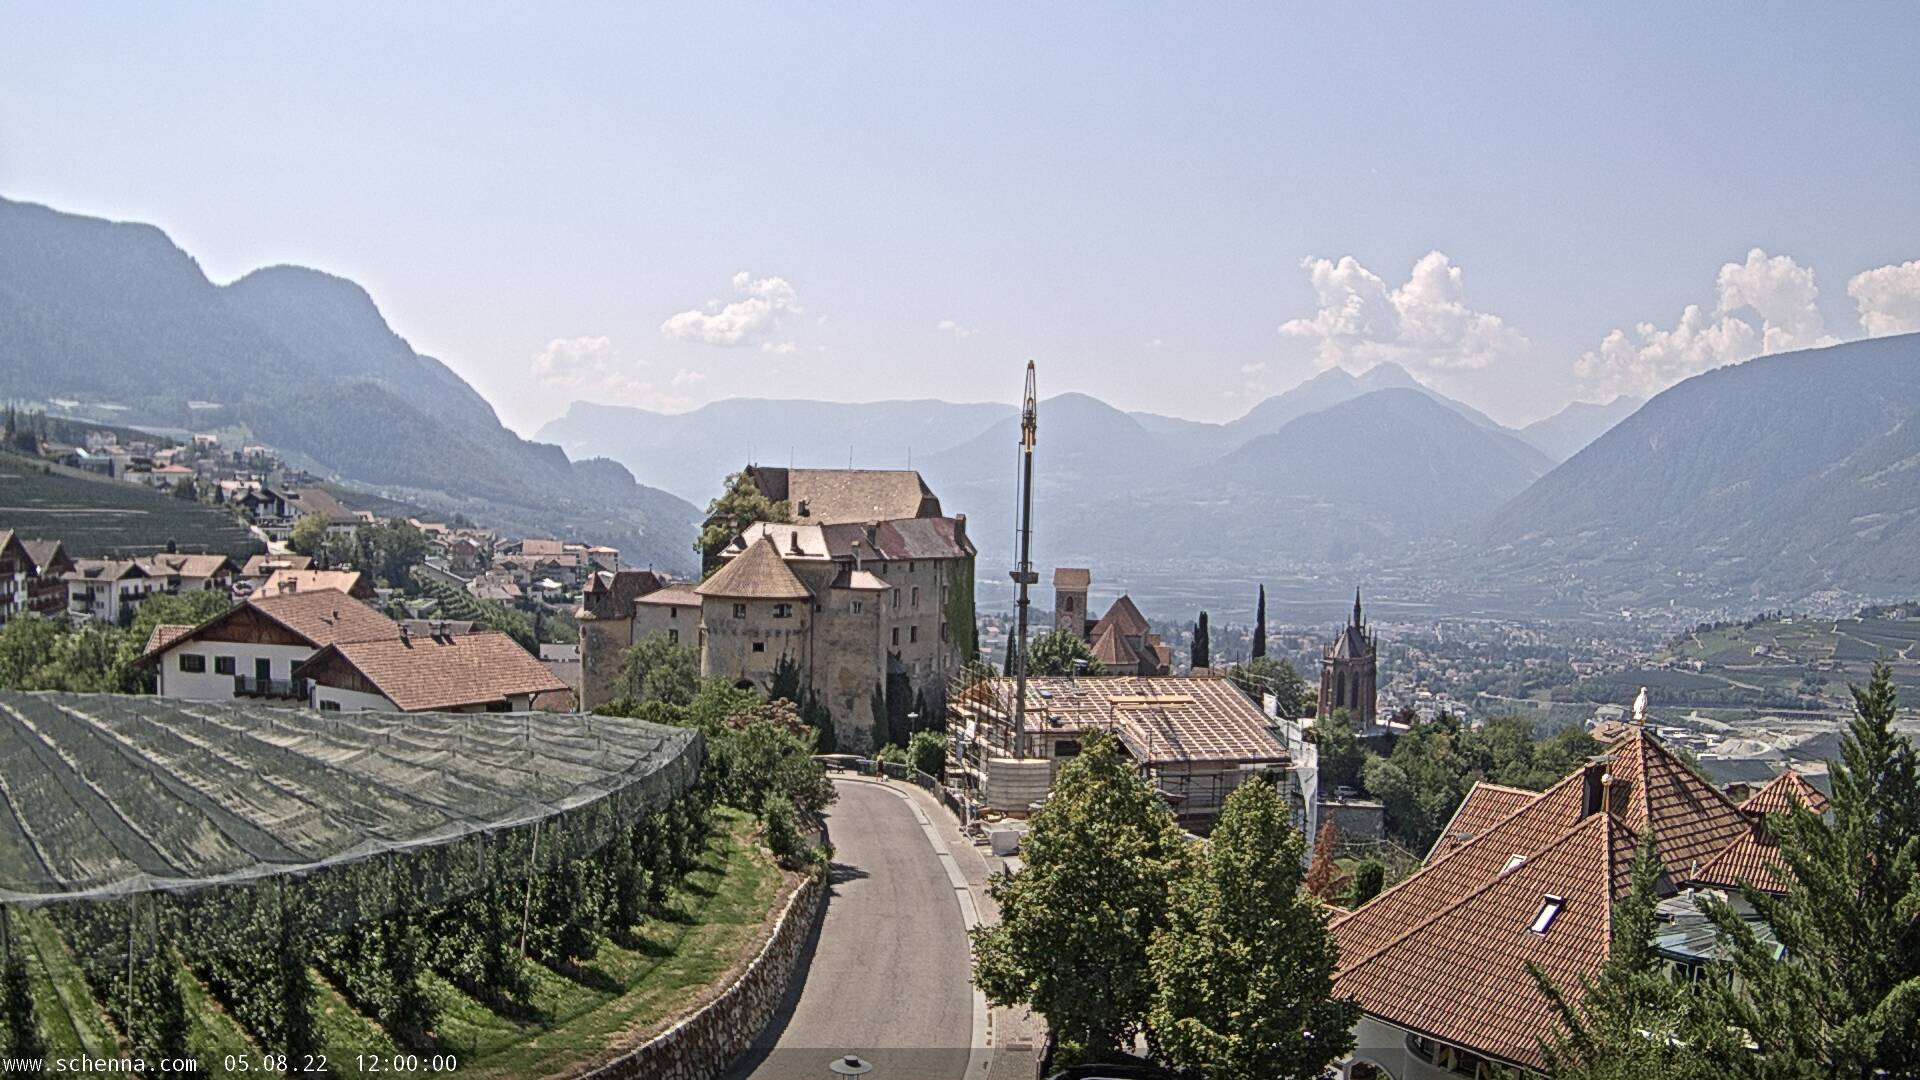 3. View on Castle Schenna, in the background the Etschtal